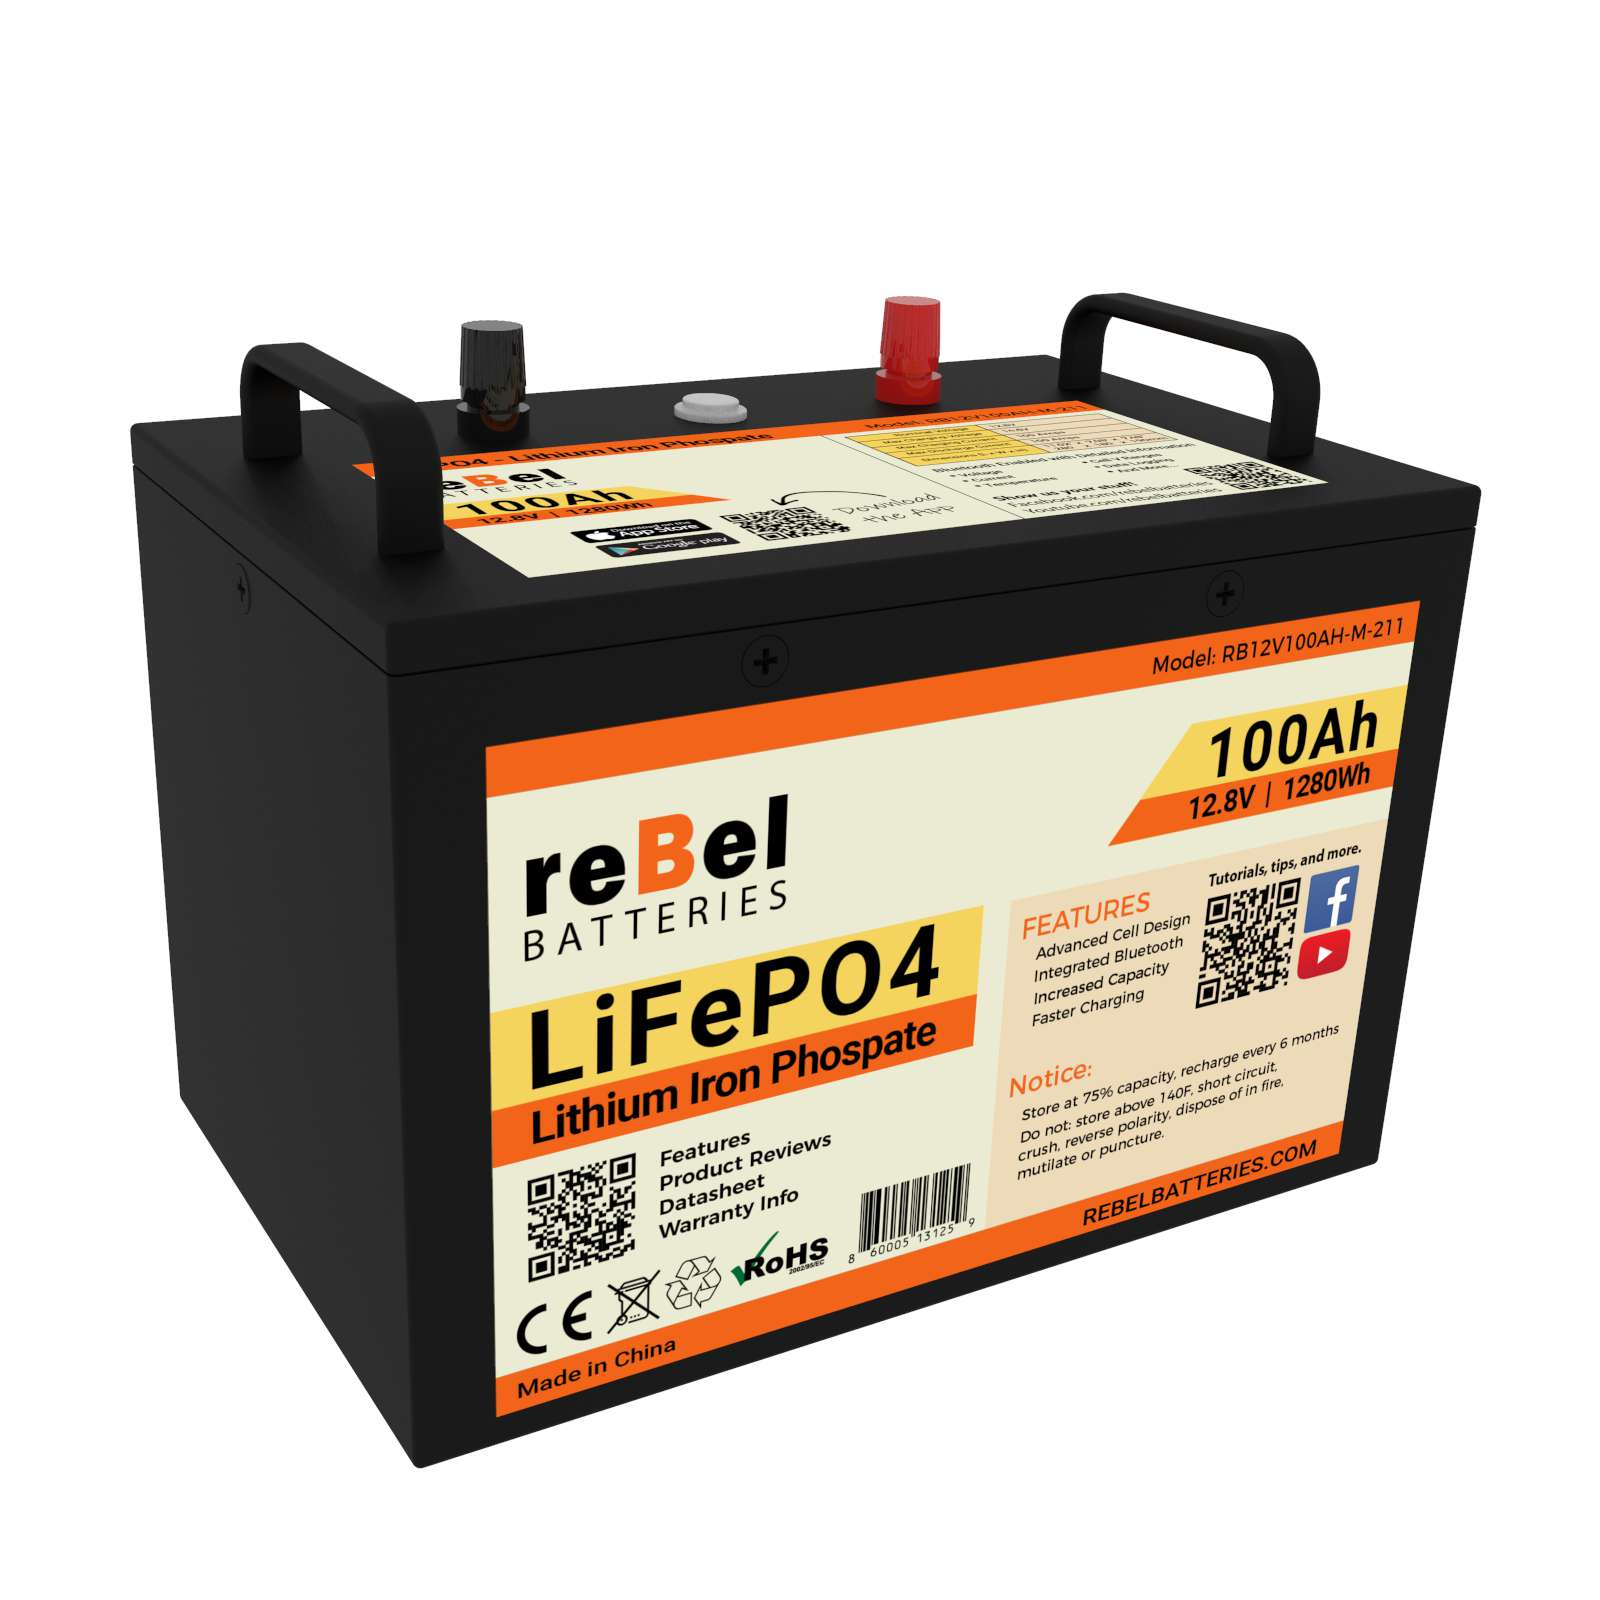 reBel Batteries launches Metal Cased 12V 100Ah LiFePO4 Bluetooth-enabled Battery